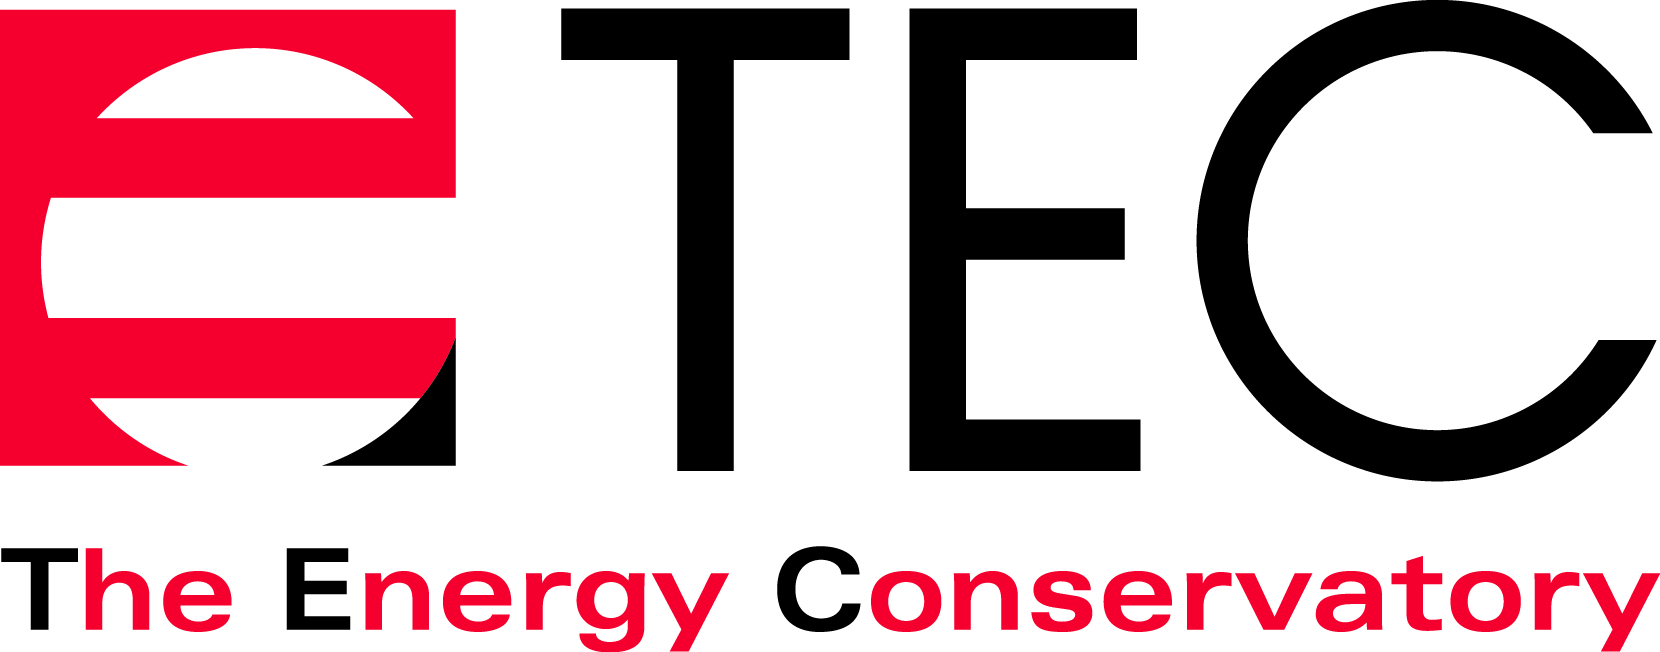 Energy Conservatory Accessories